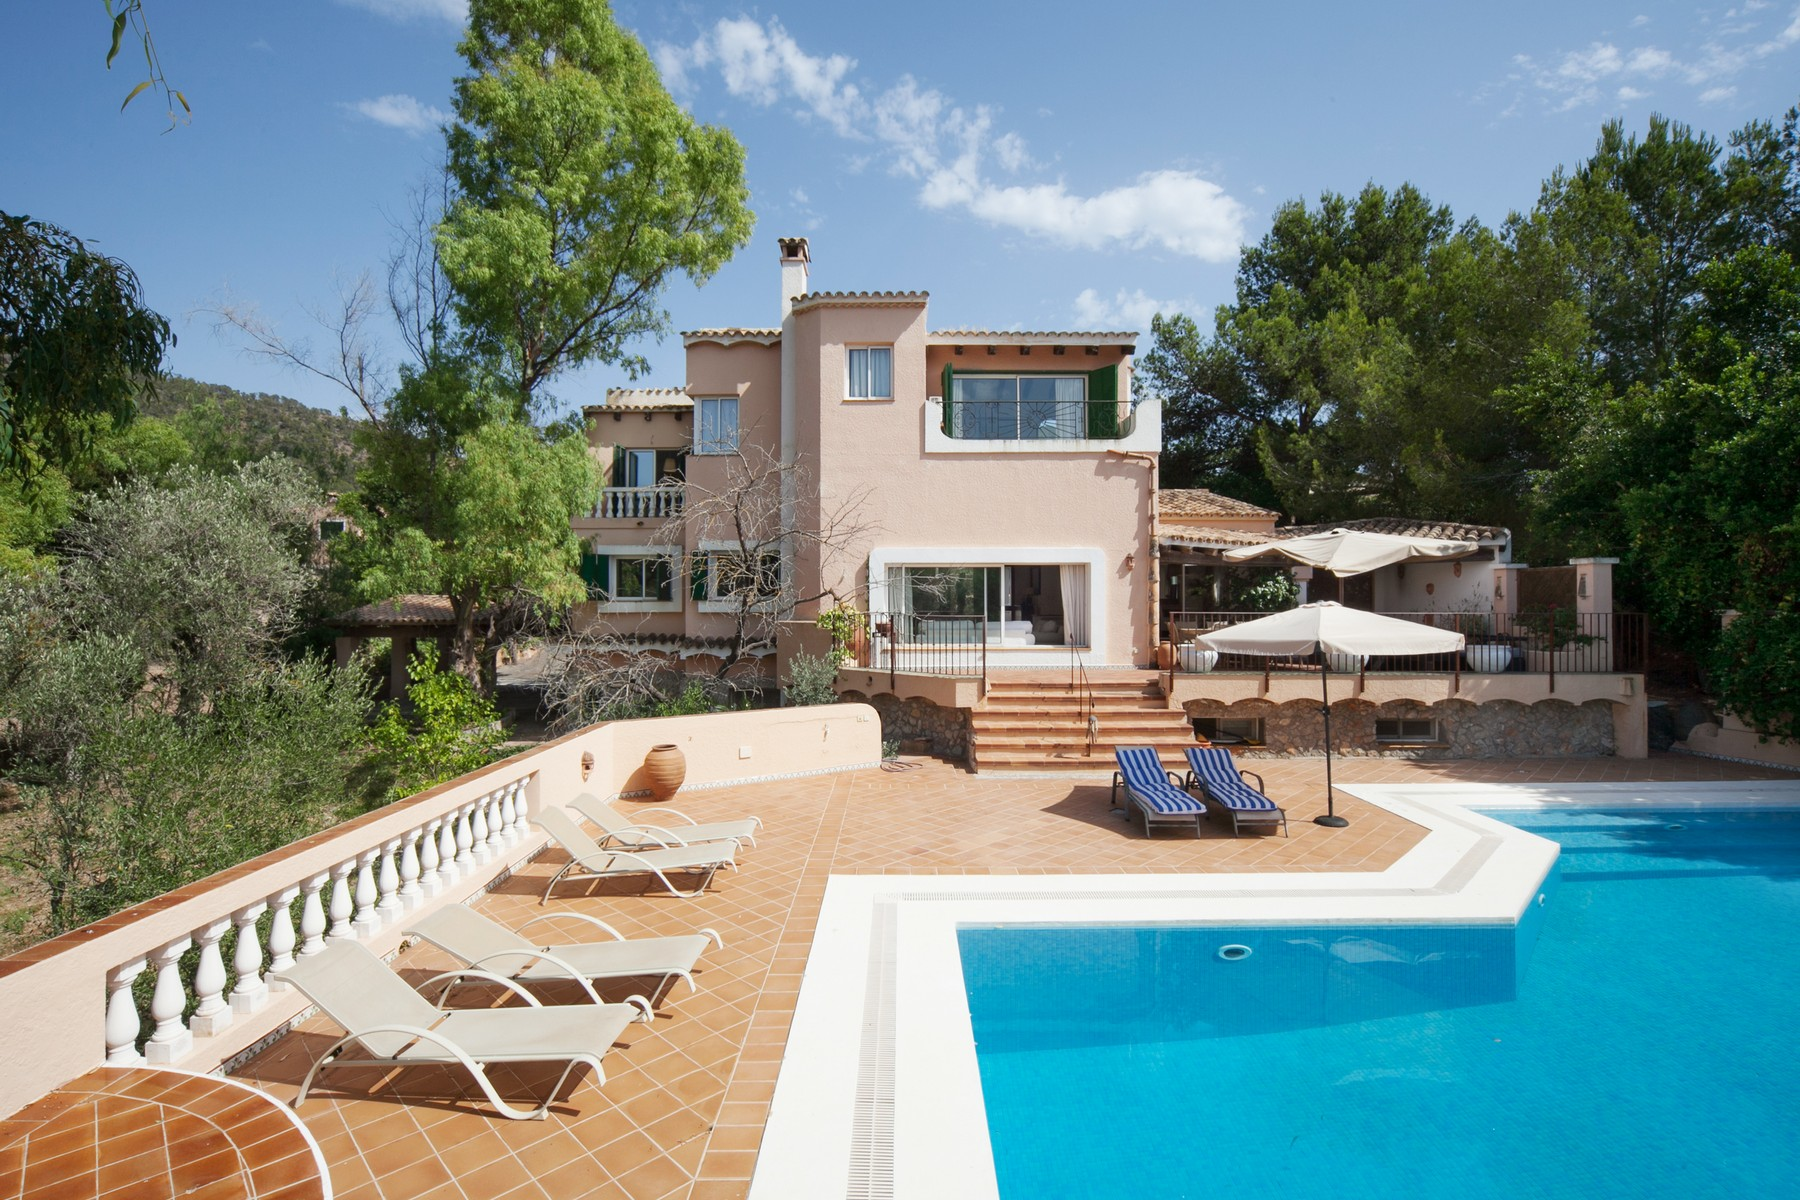 Single Family Home for Sale at Country home with guest house in Coll d´en Baix Port Andratx, Mallorca 07157 Spain